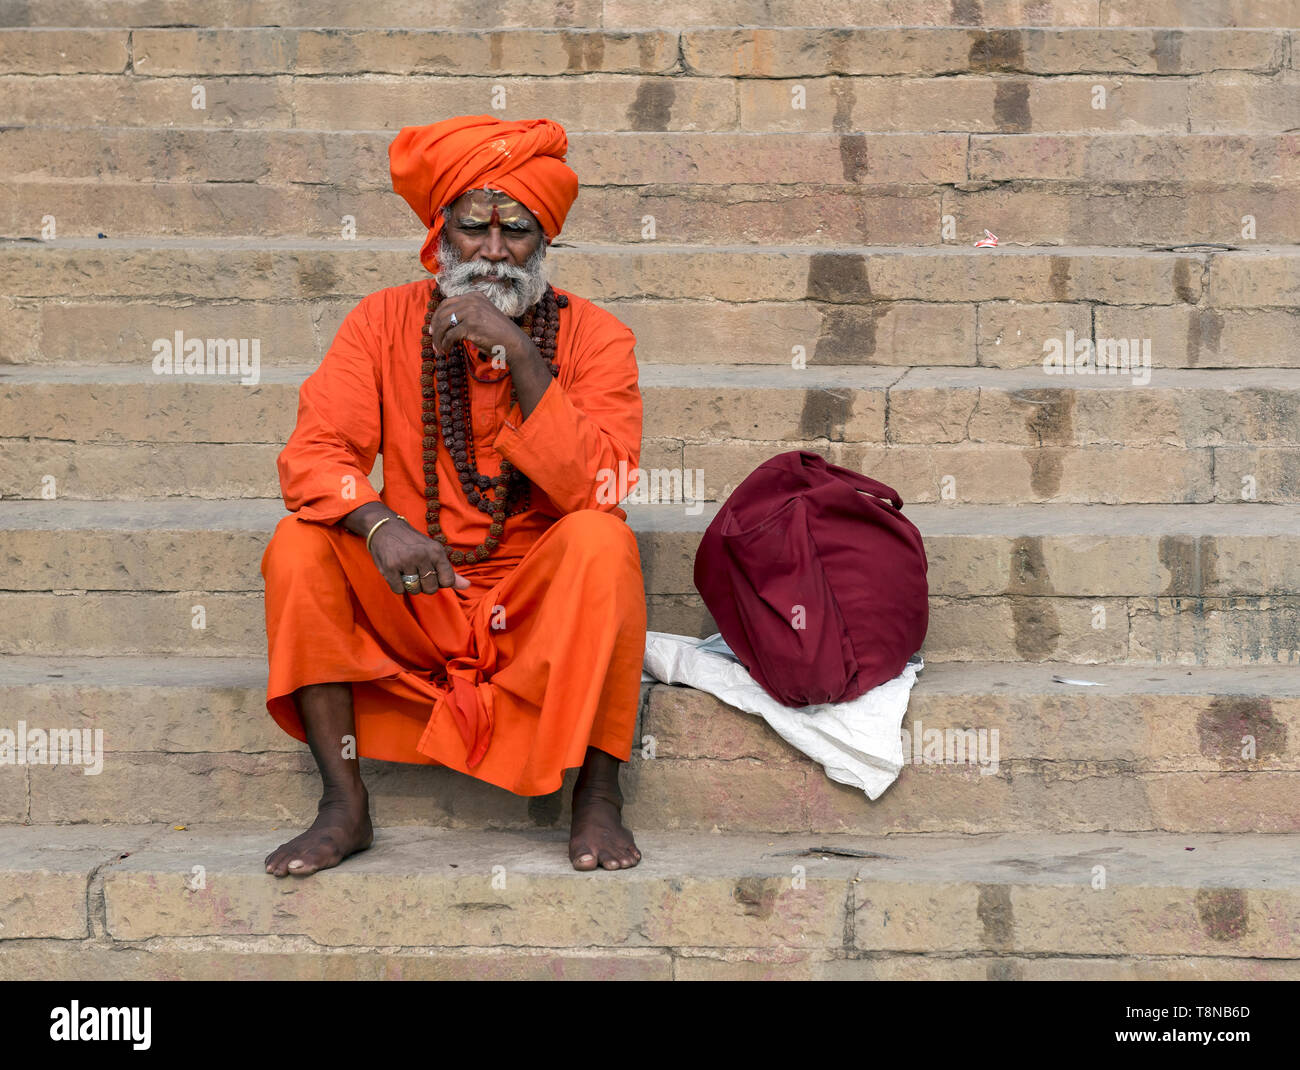 Portrait of a Sadhu (holy man) on the ghats of River Ganges, Varanasi, India - Stock Image